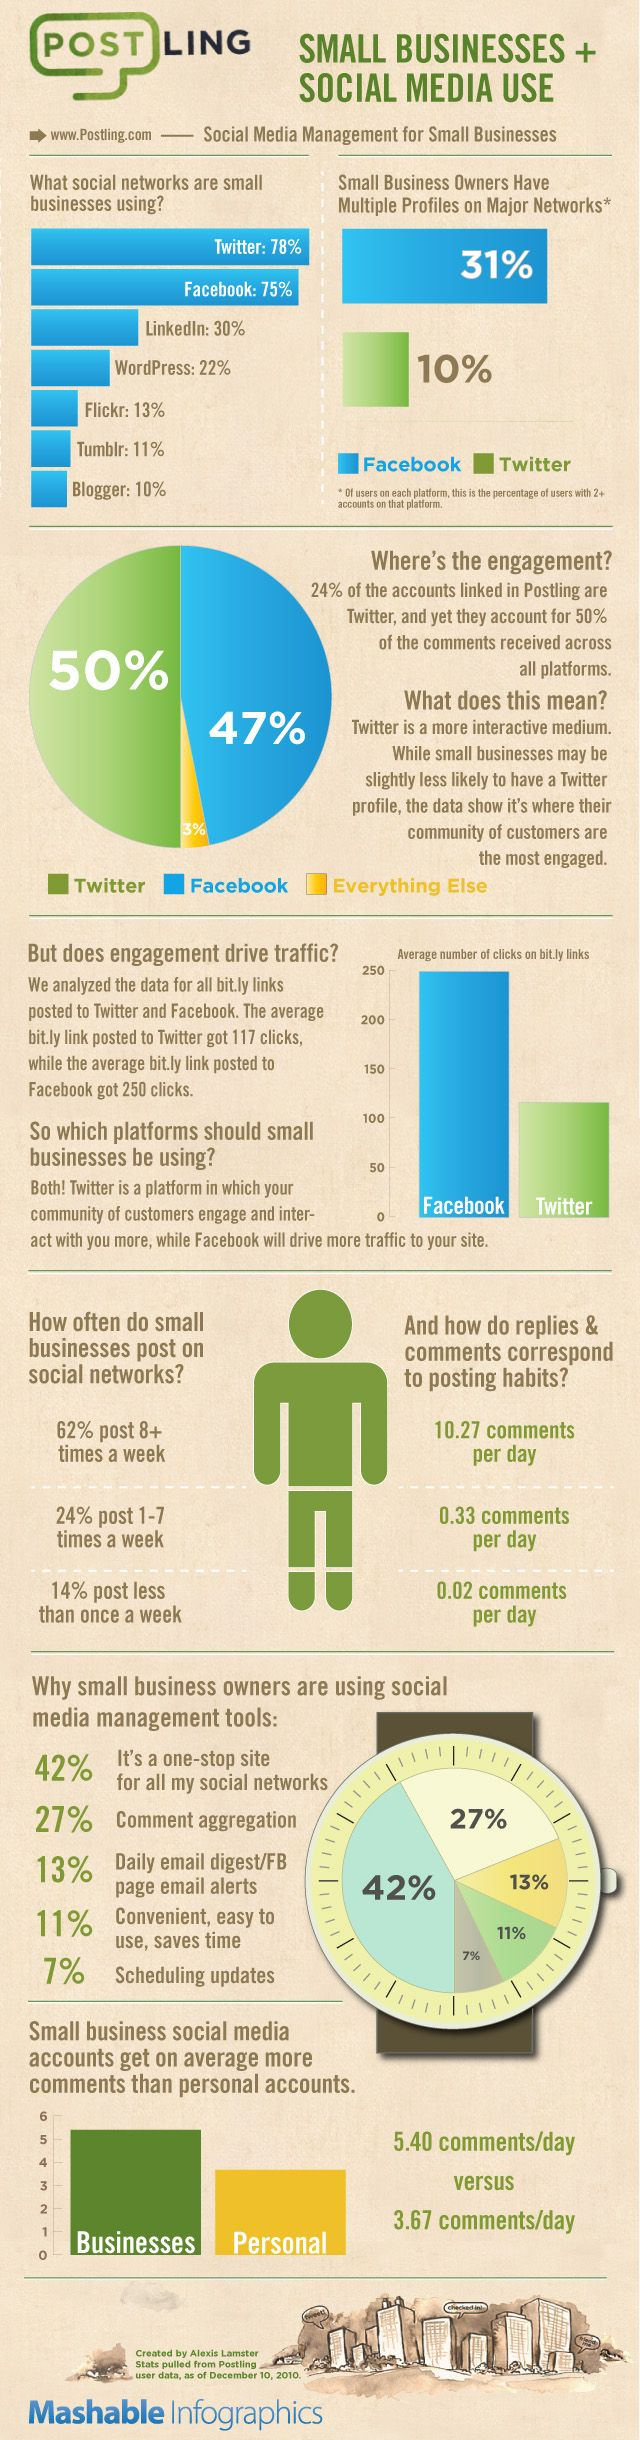 How Small Businesses are using Social Media in Feb 2011.     Using these stats in my presentation, I would love an update. 78% use Twitter, 75% use Facebook. Twitter is a platform in which your community of customers engage and interact with you more, while Facebook will drive more traffic to your site. 62% post 8+ times a week and 10 comments per day.